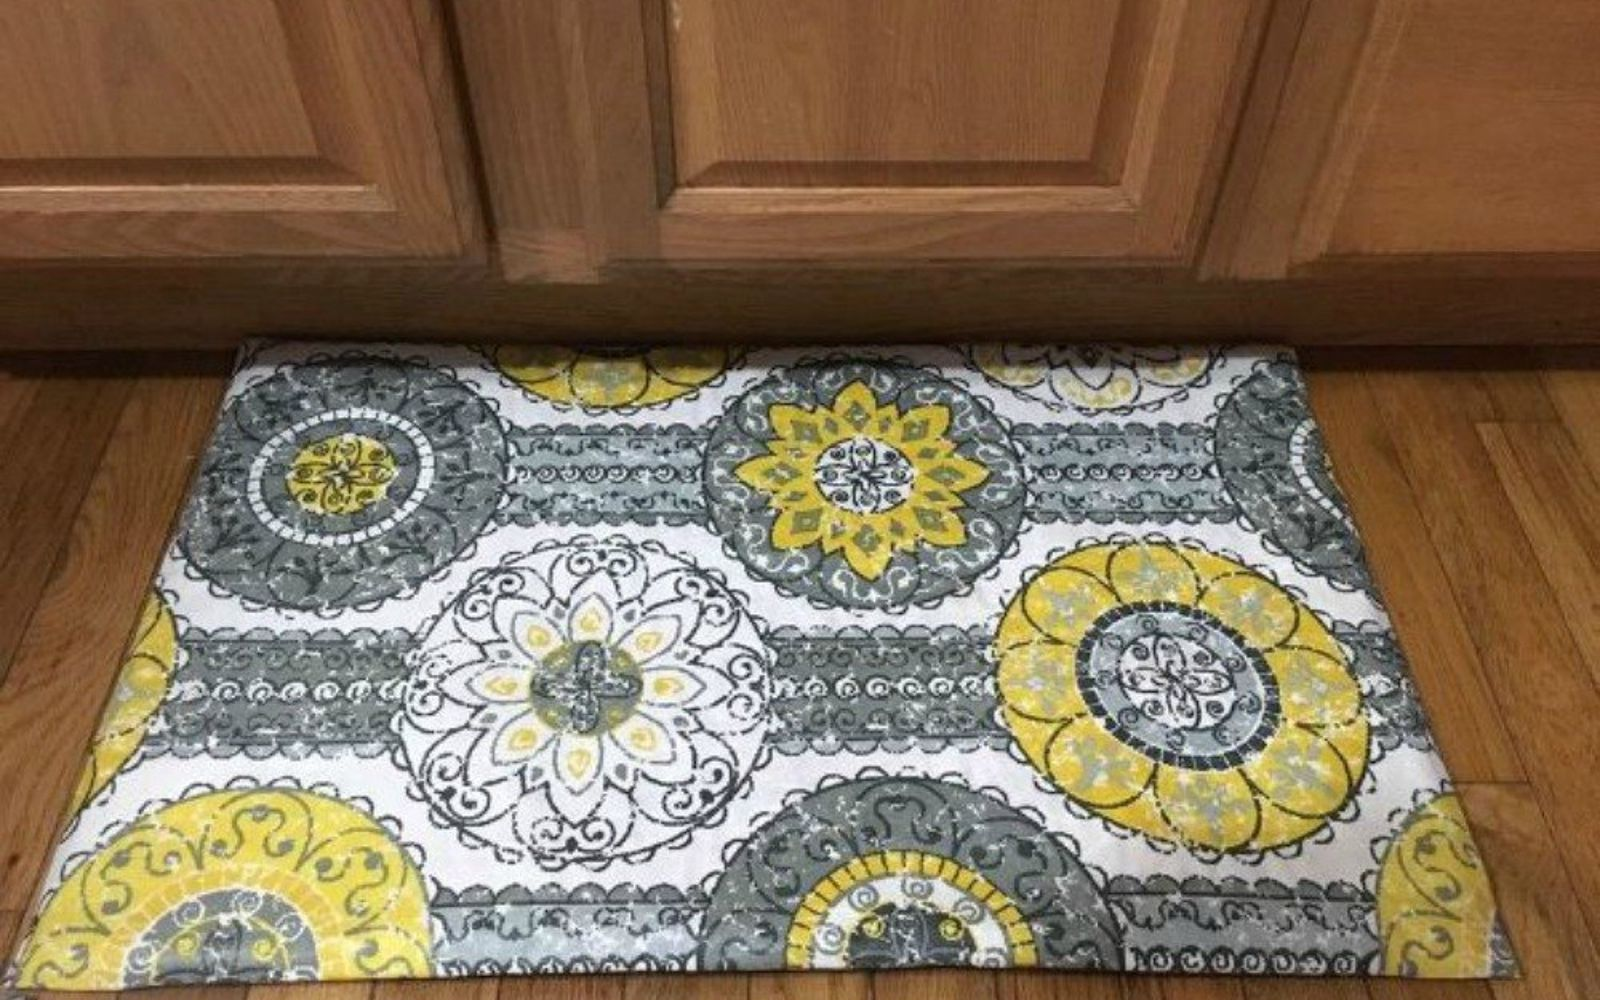 s 11 ways you never thought of using fabric in your kitchen, kitchen design, reupholster, As a way to cover those plain kitchen mats